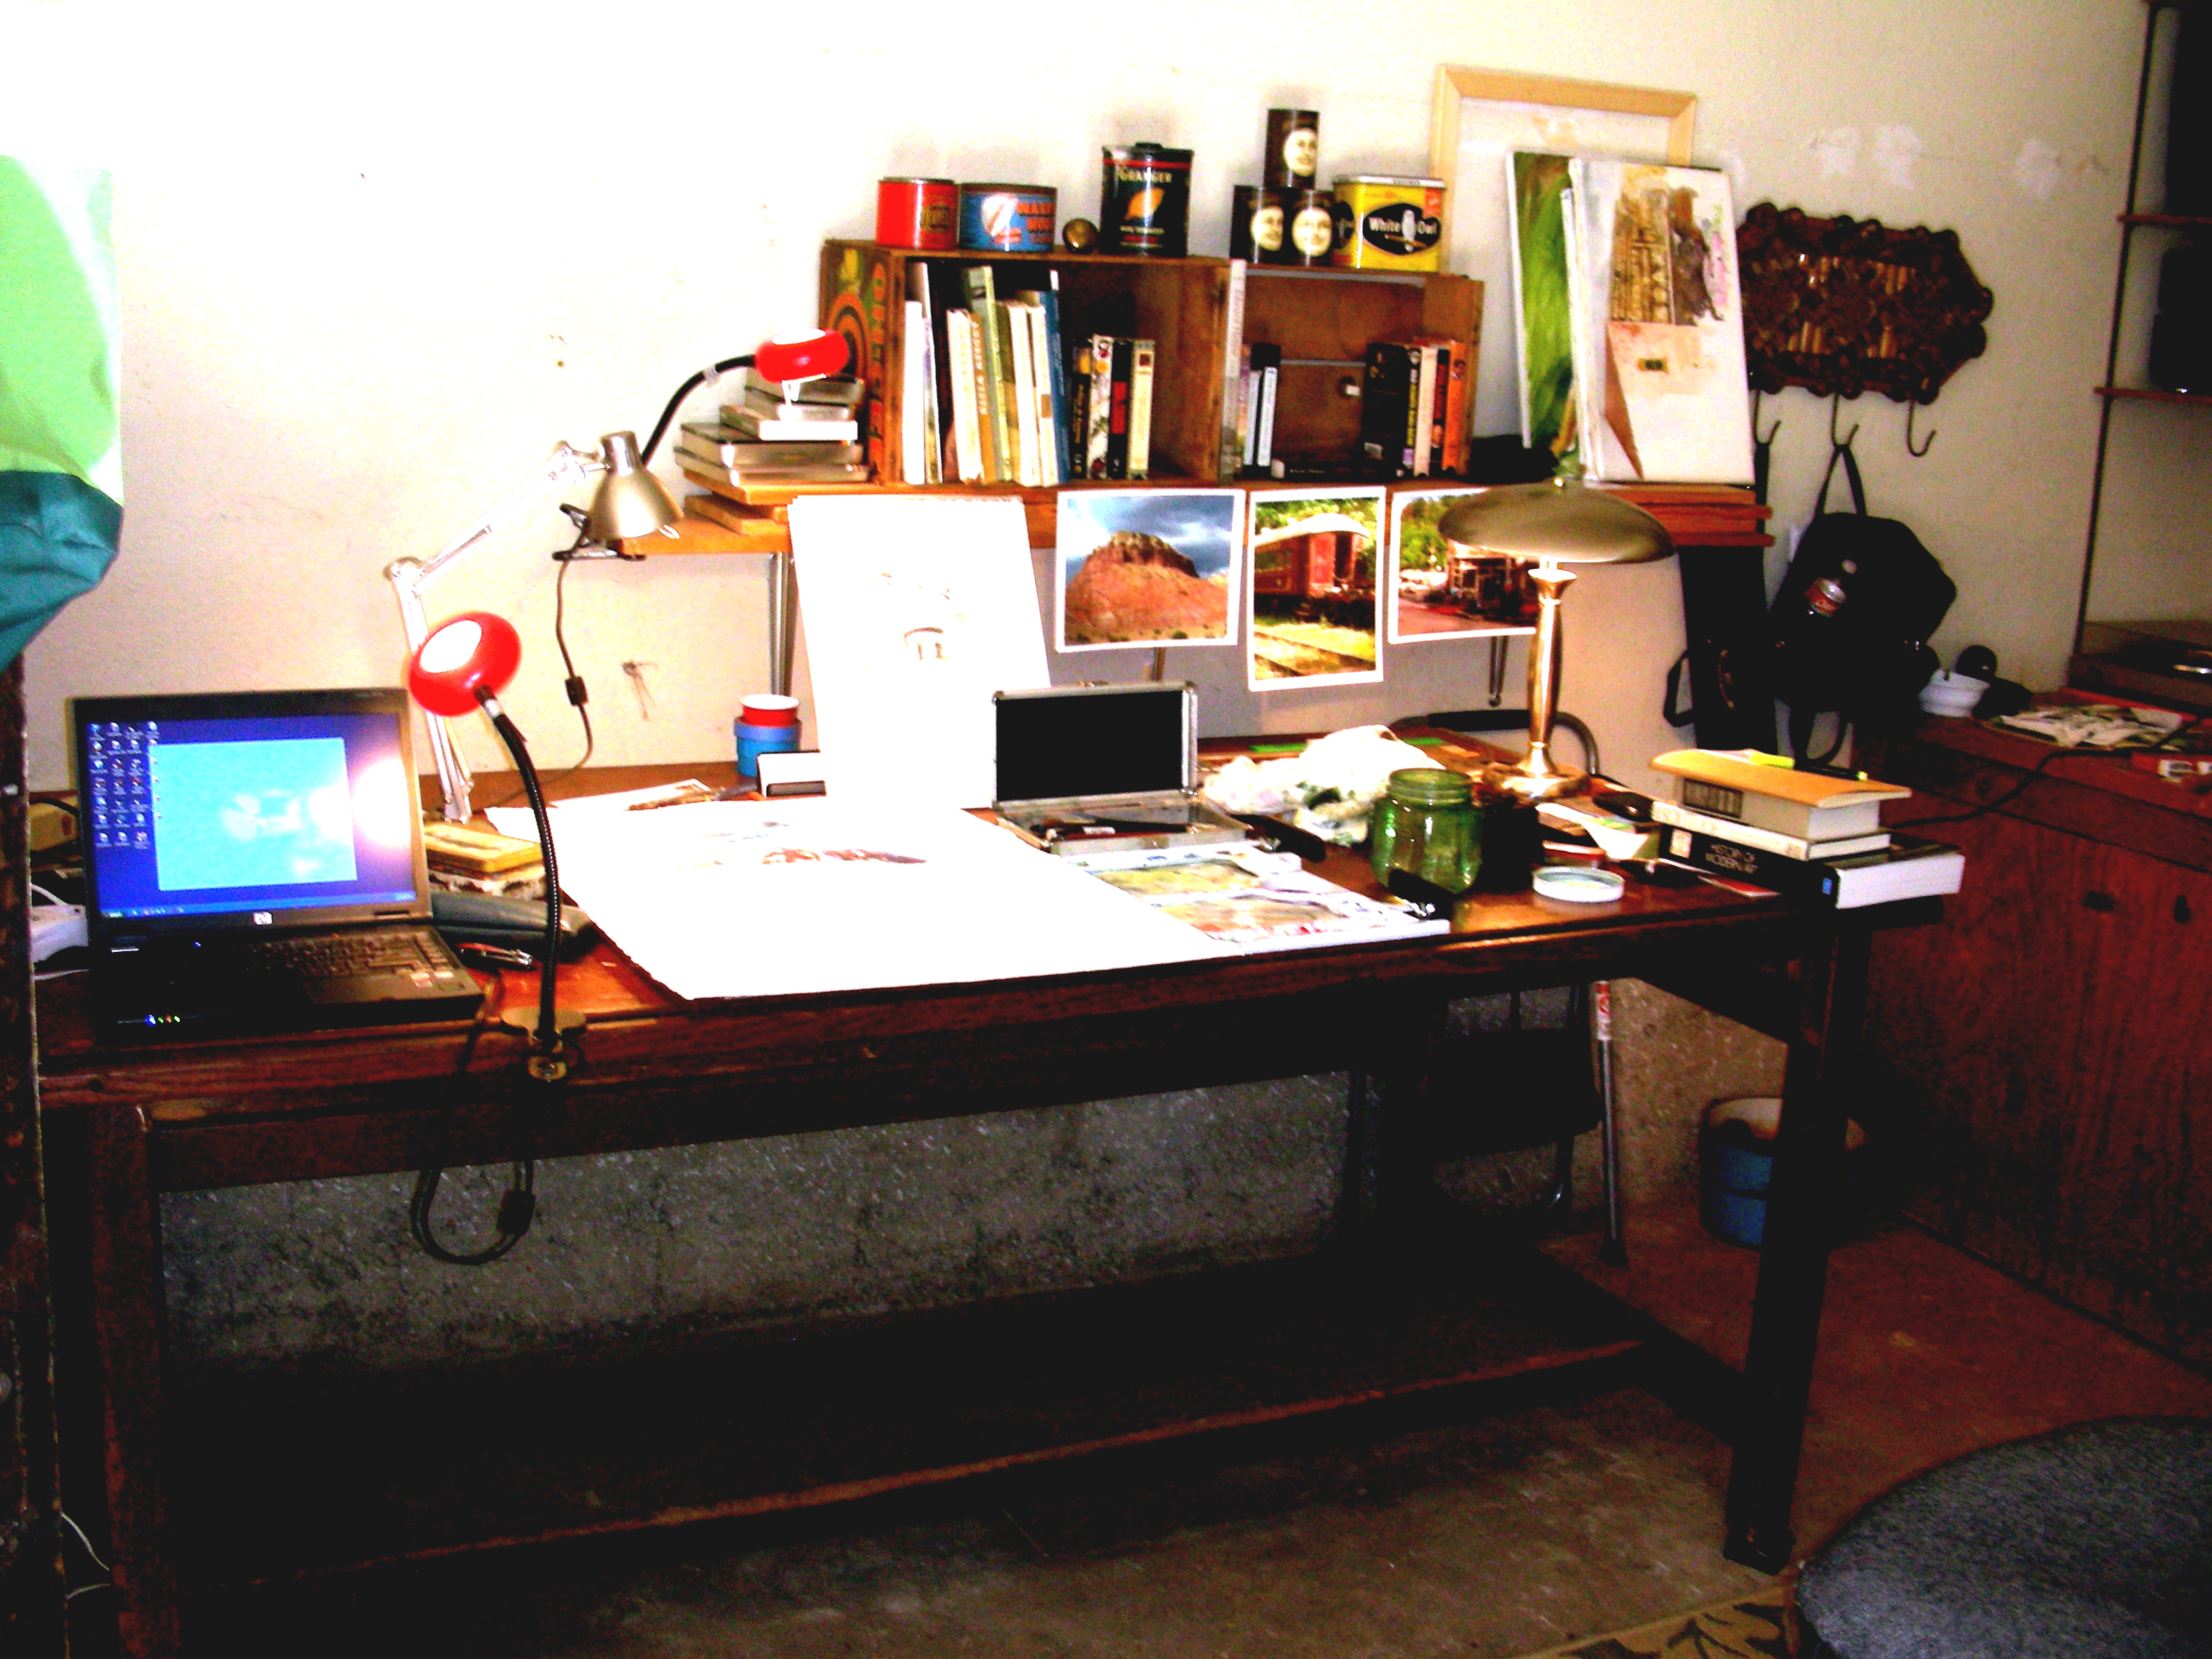 Man Cave Art Studio : Meditations from the man cave recollections art of david